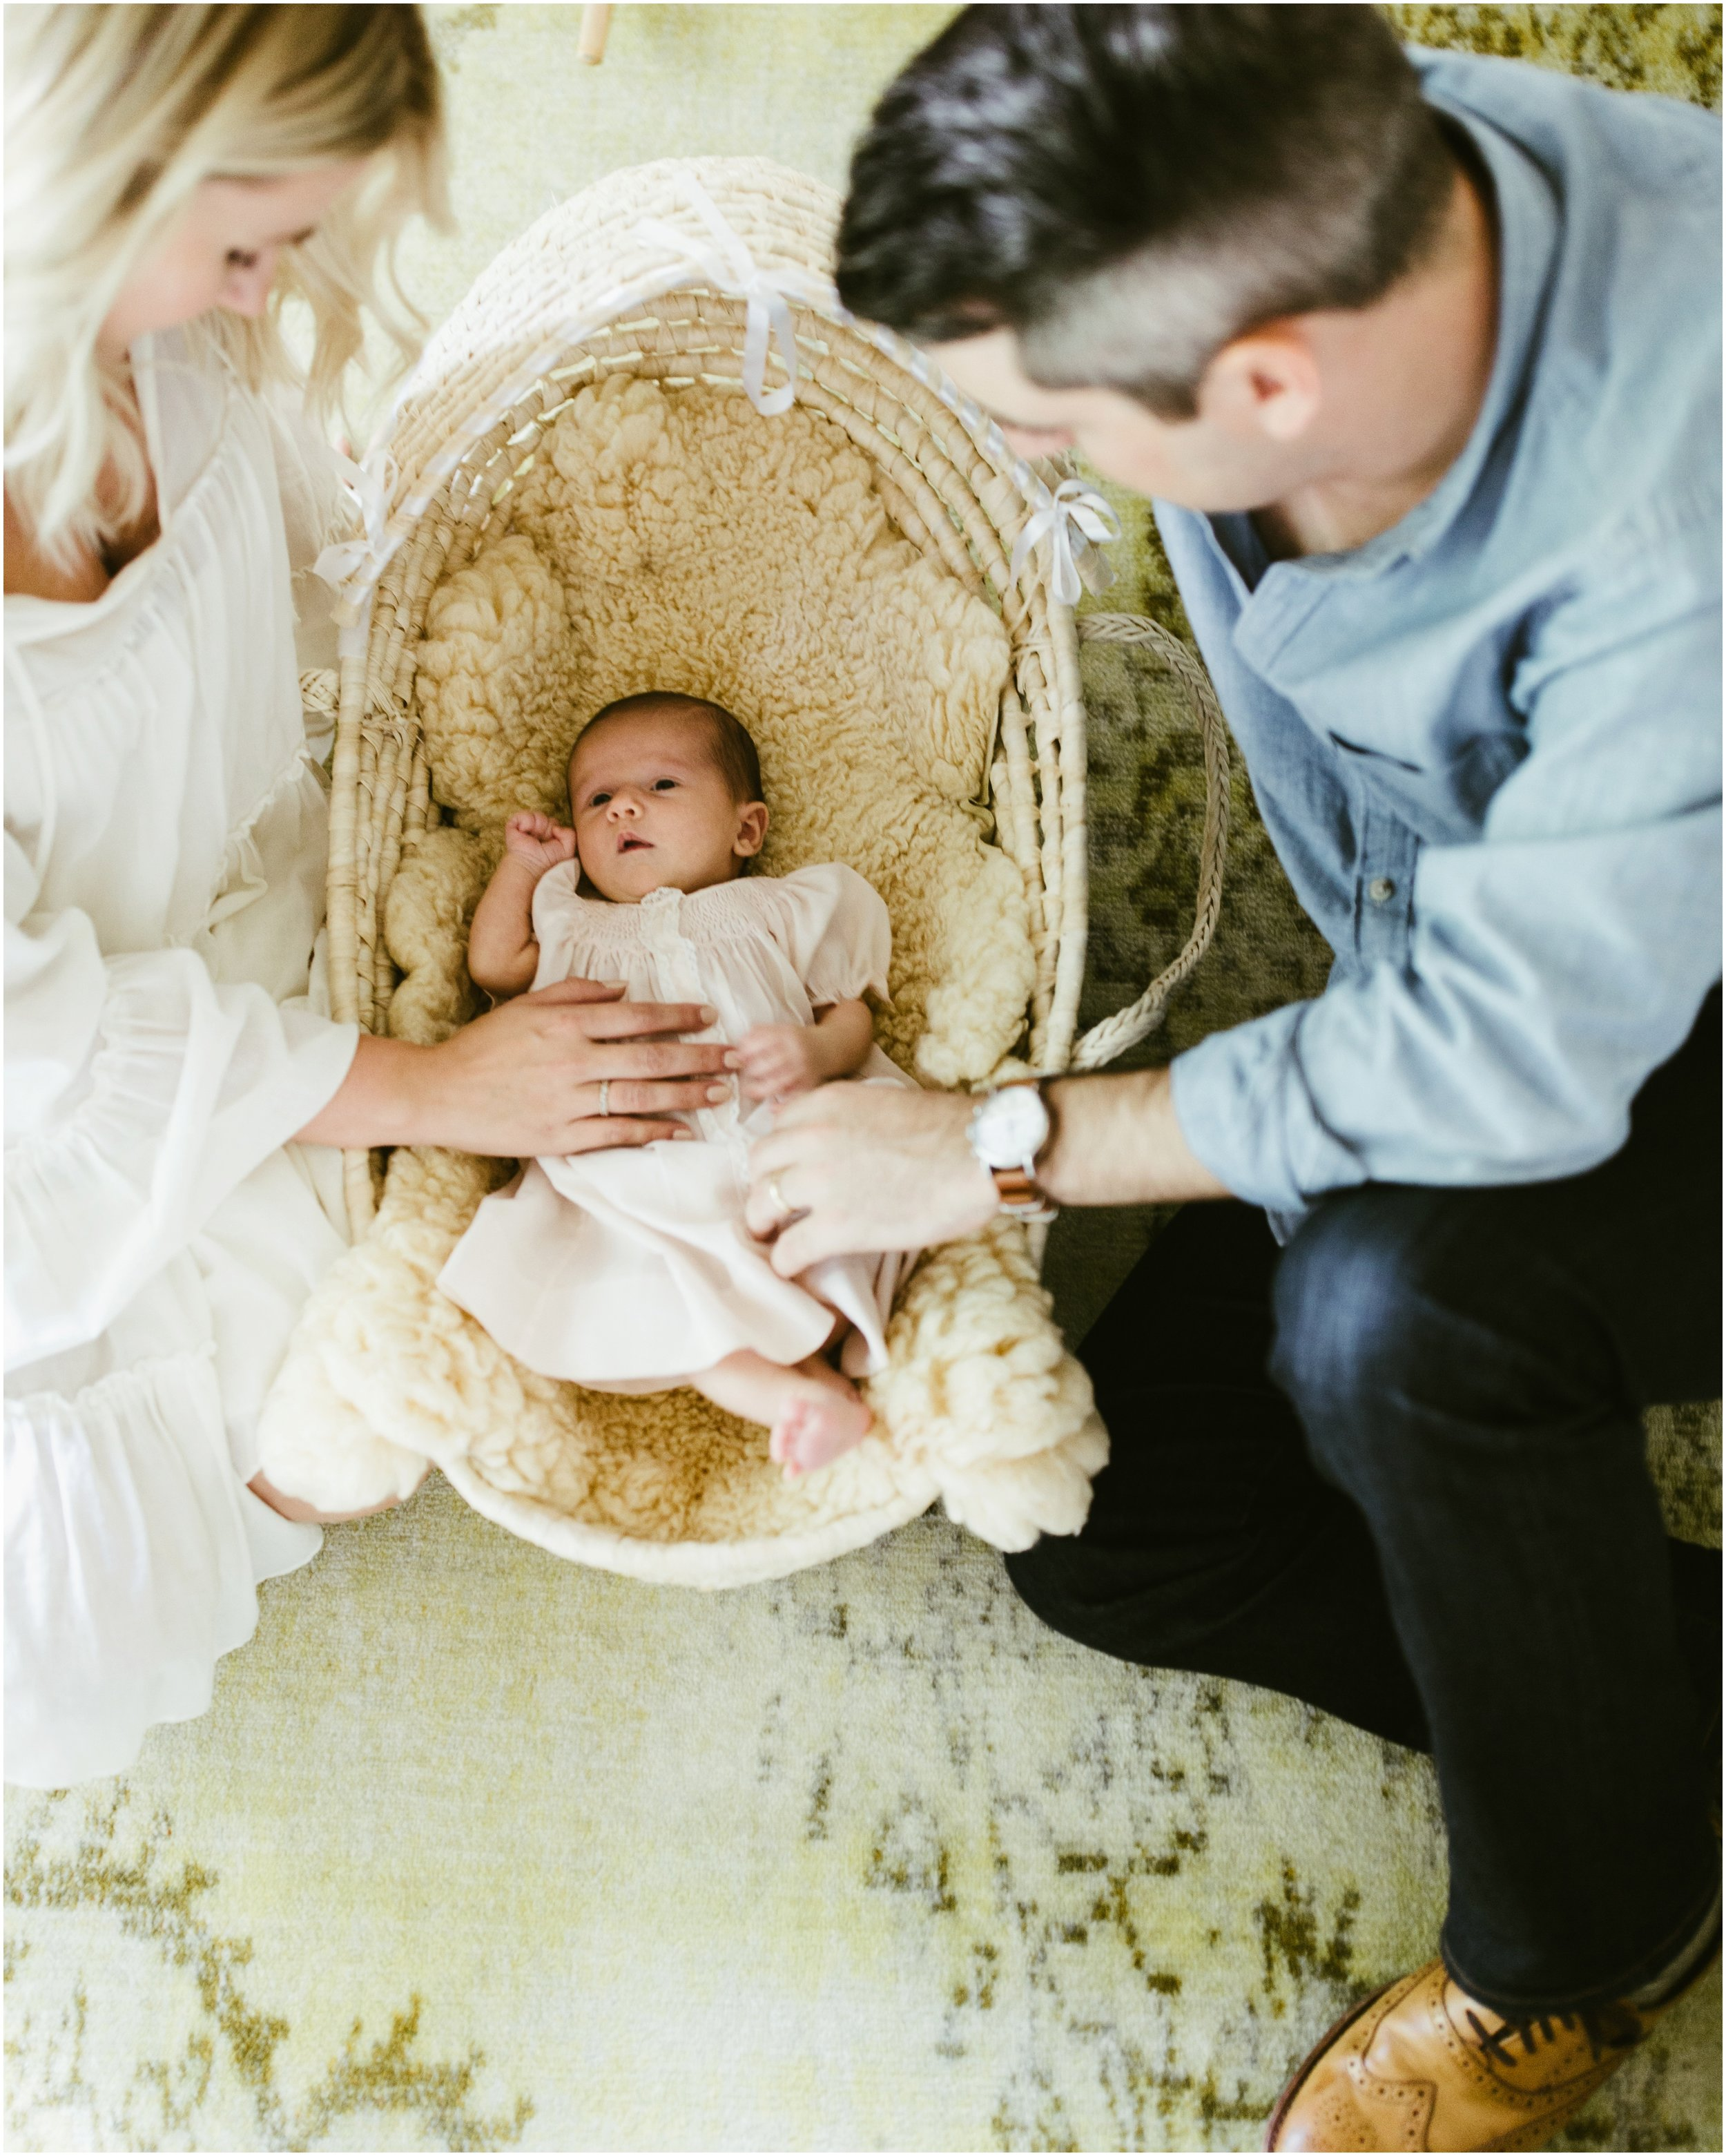 Roth-Lillian-Newborn-2017-September-1666_quaint-and-whim-lifestyle-newborn-photographer-louisiana-roth-family-.jpg